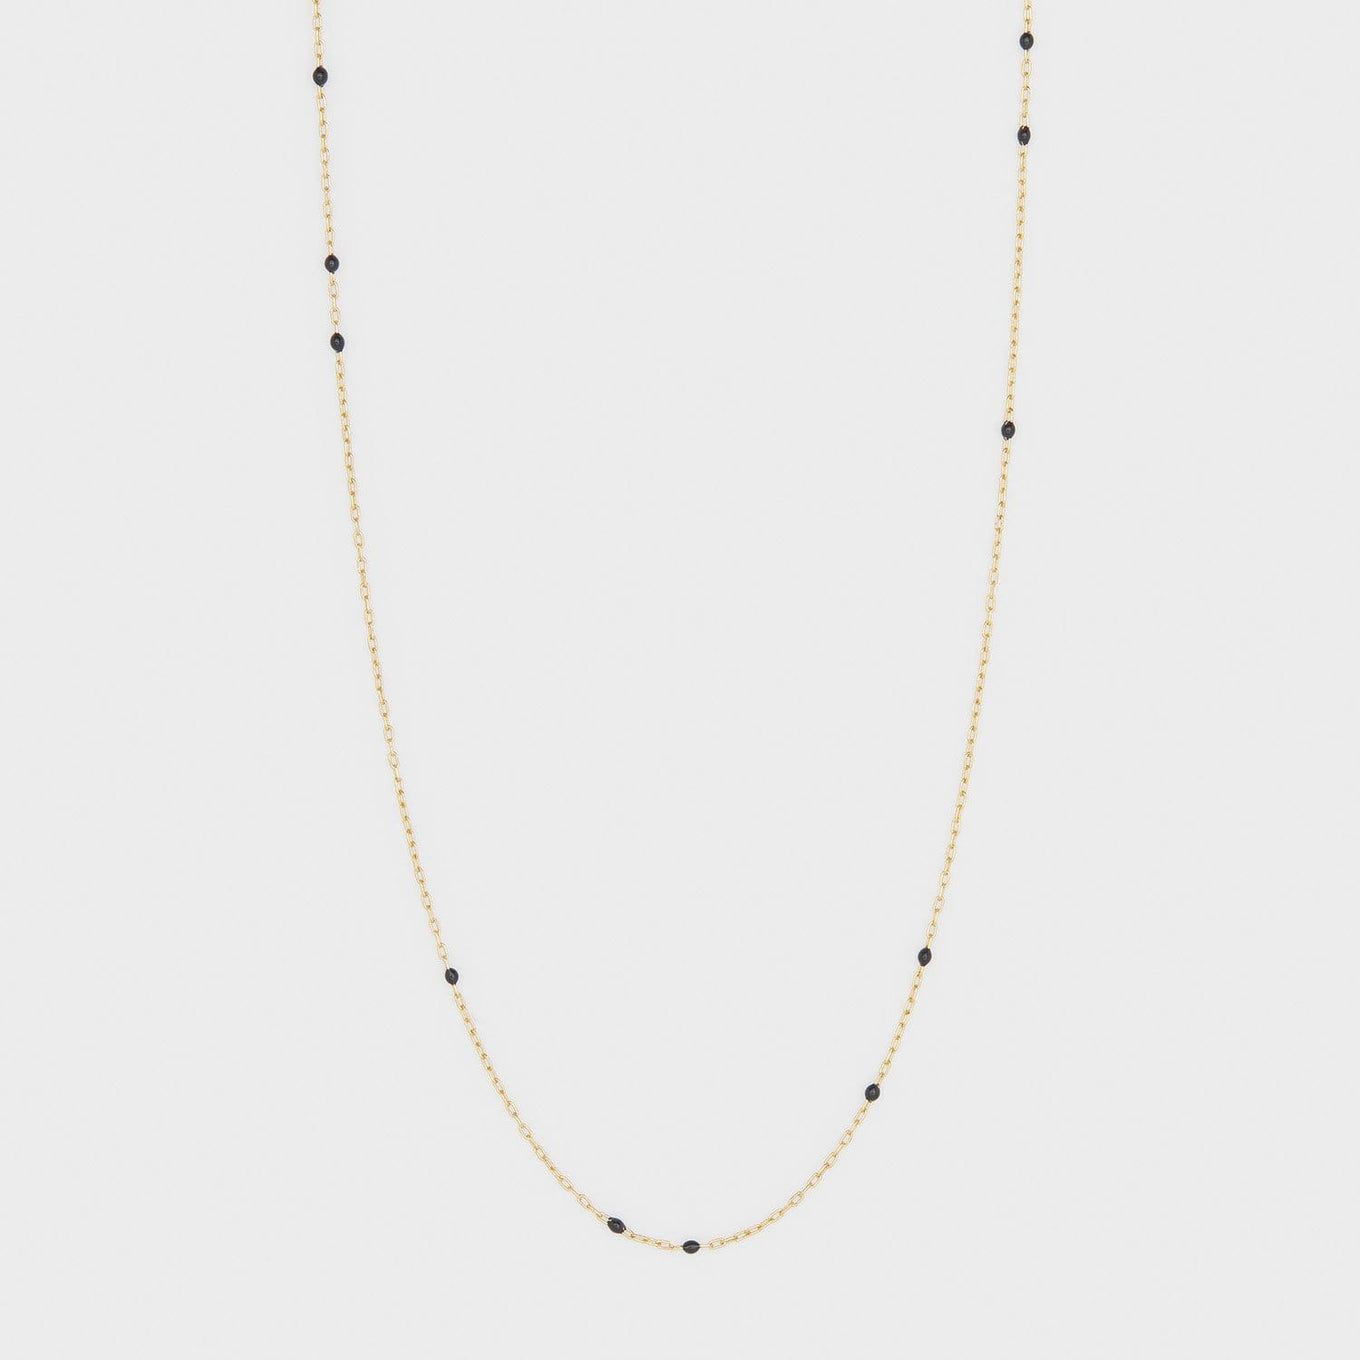 Capri Necklace Black Enamel